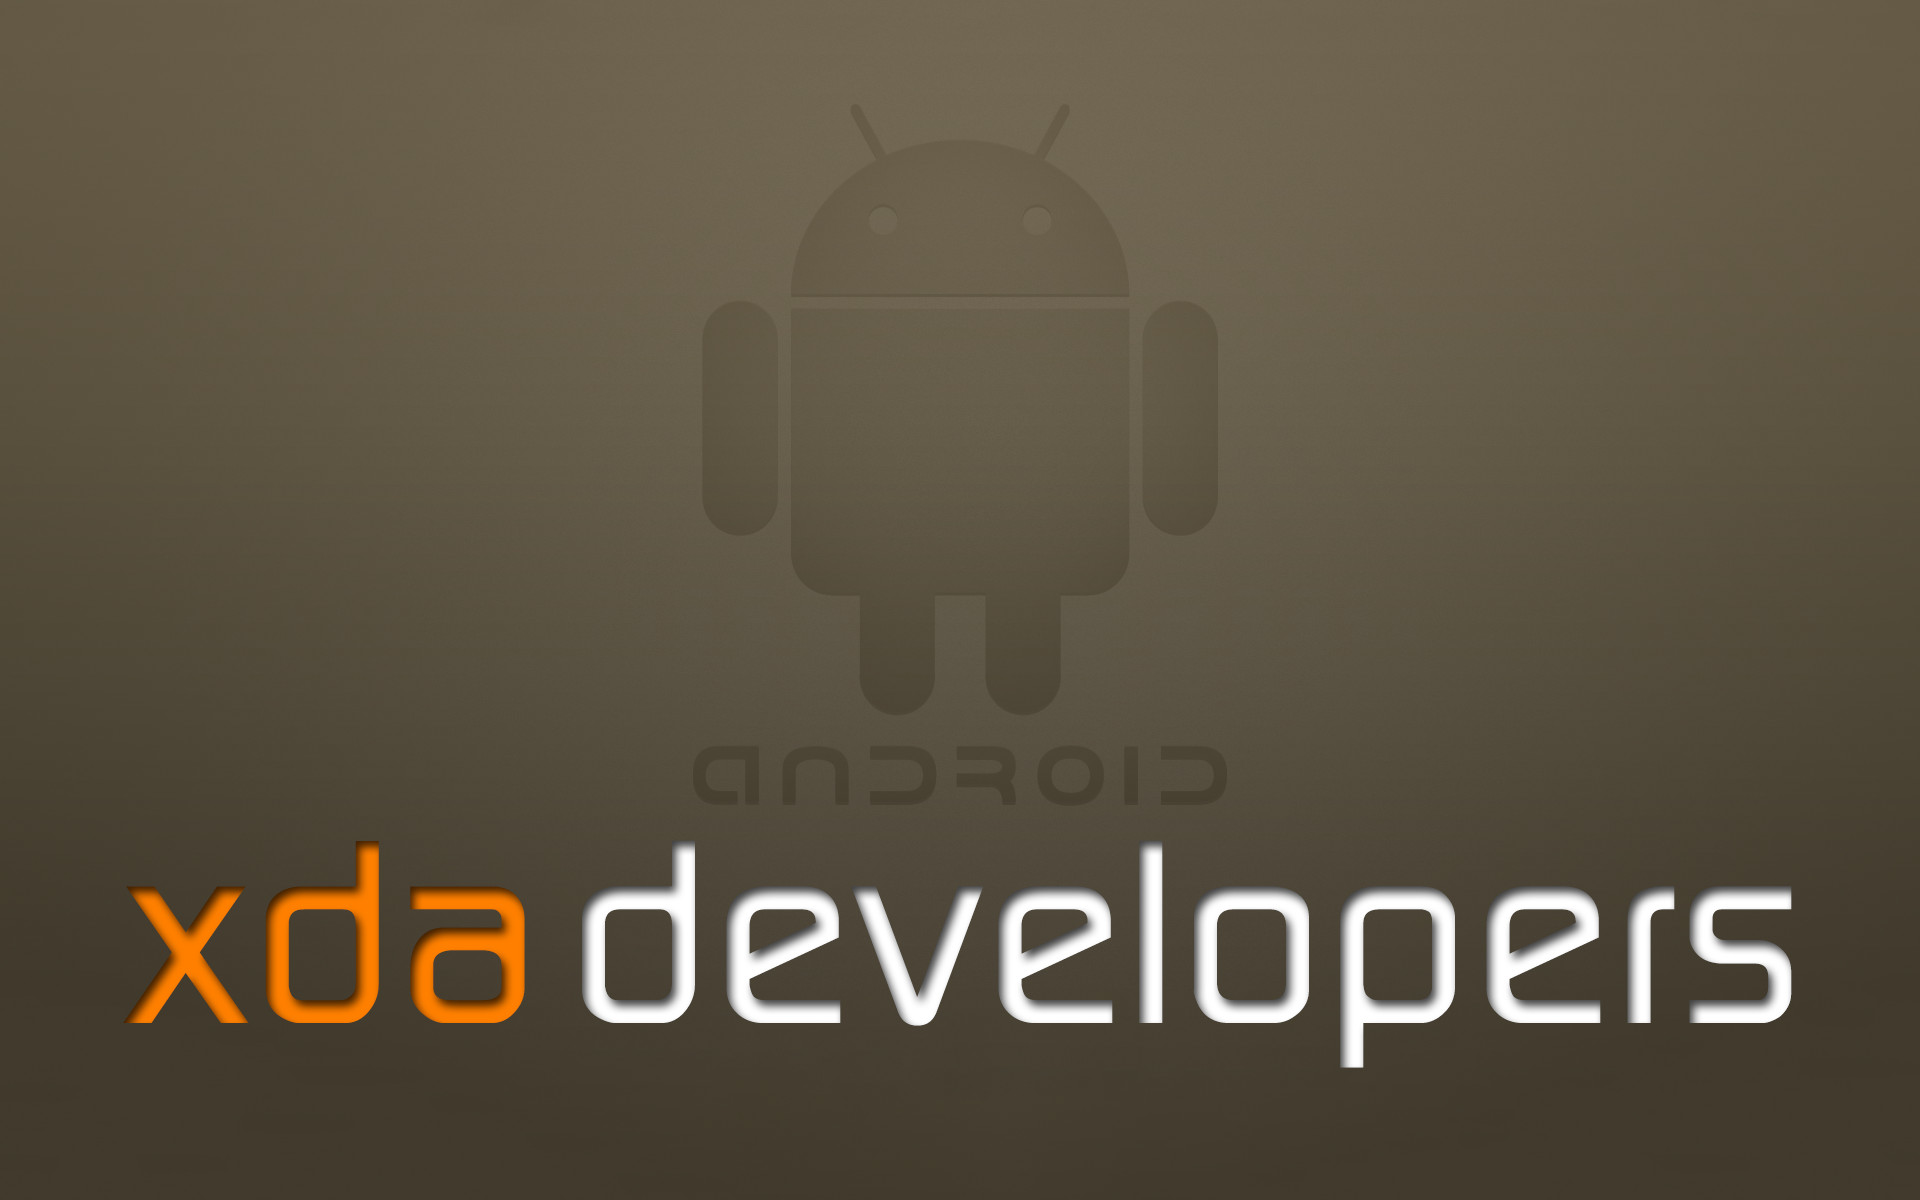 Hd wallpaper xda -  Android Xda Developers Full Hd Wallpaper By Divaksh